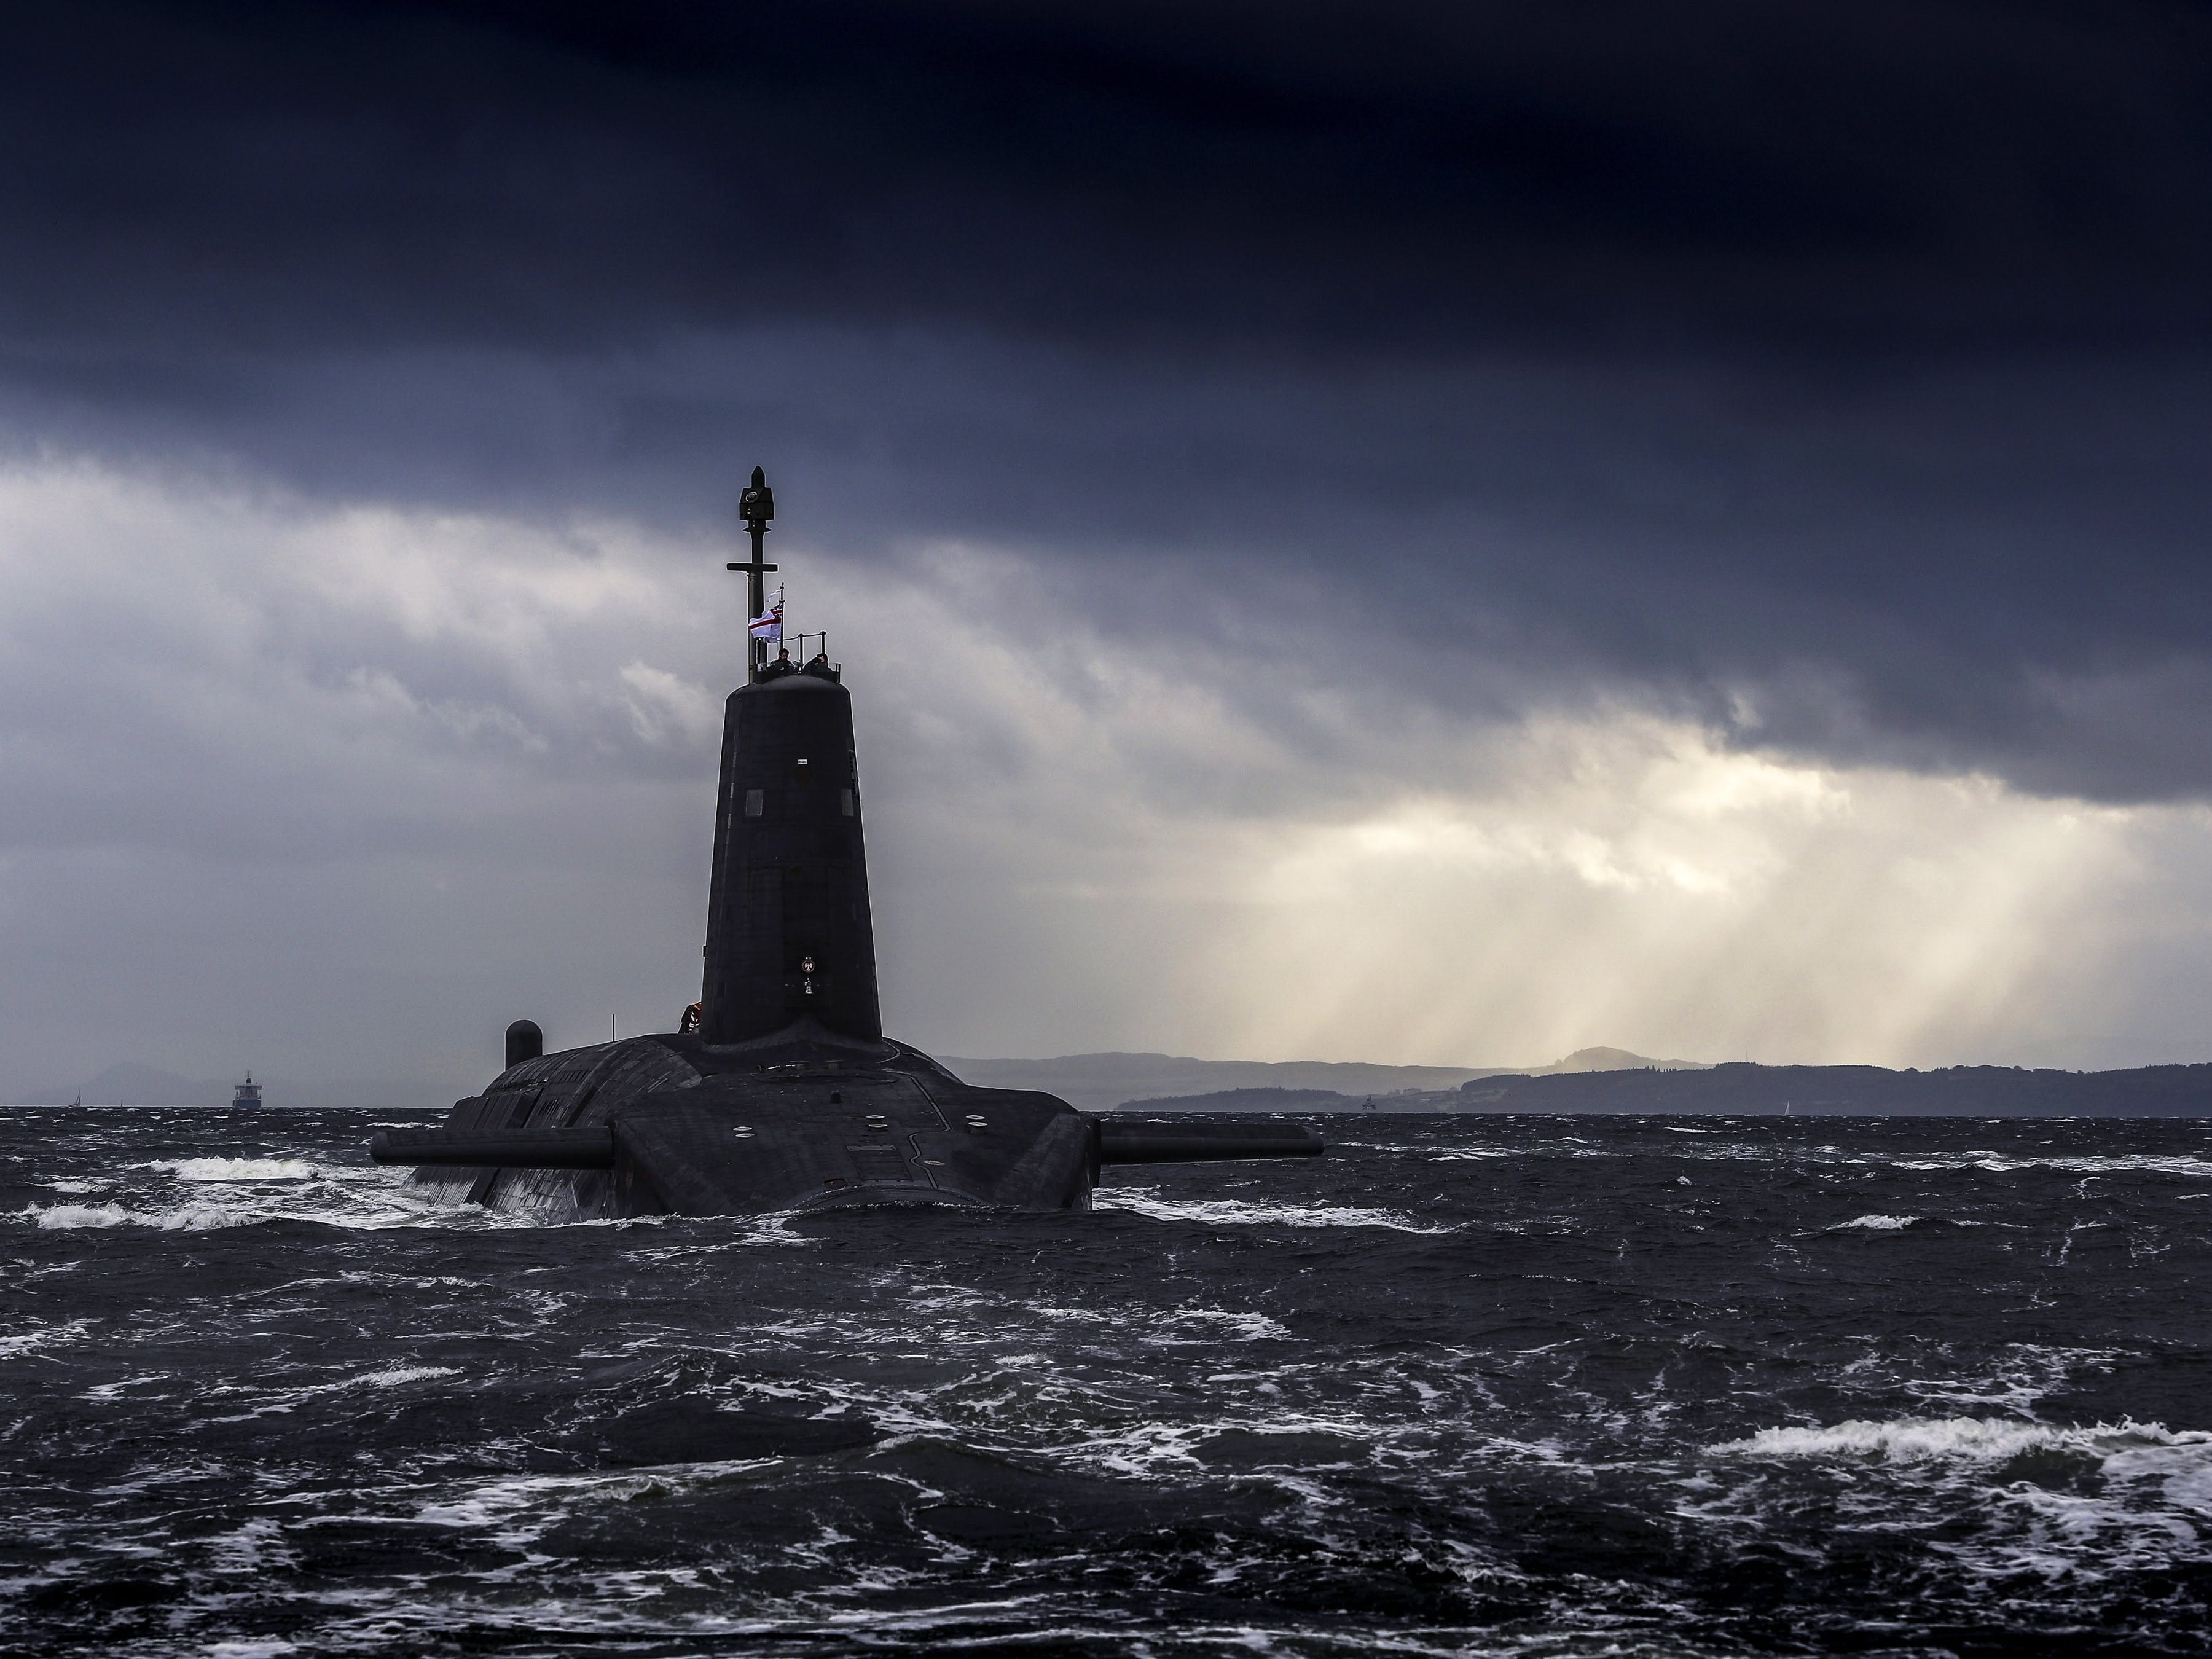 Why are nuclear submarines based on the Clyde?